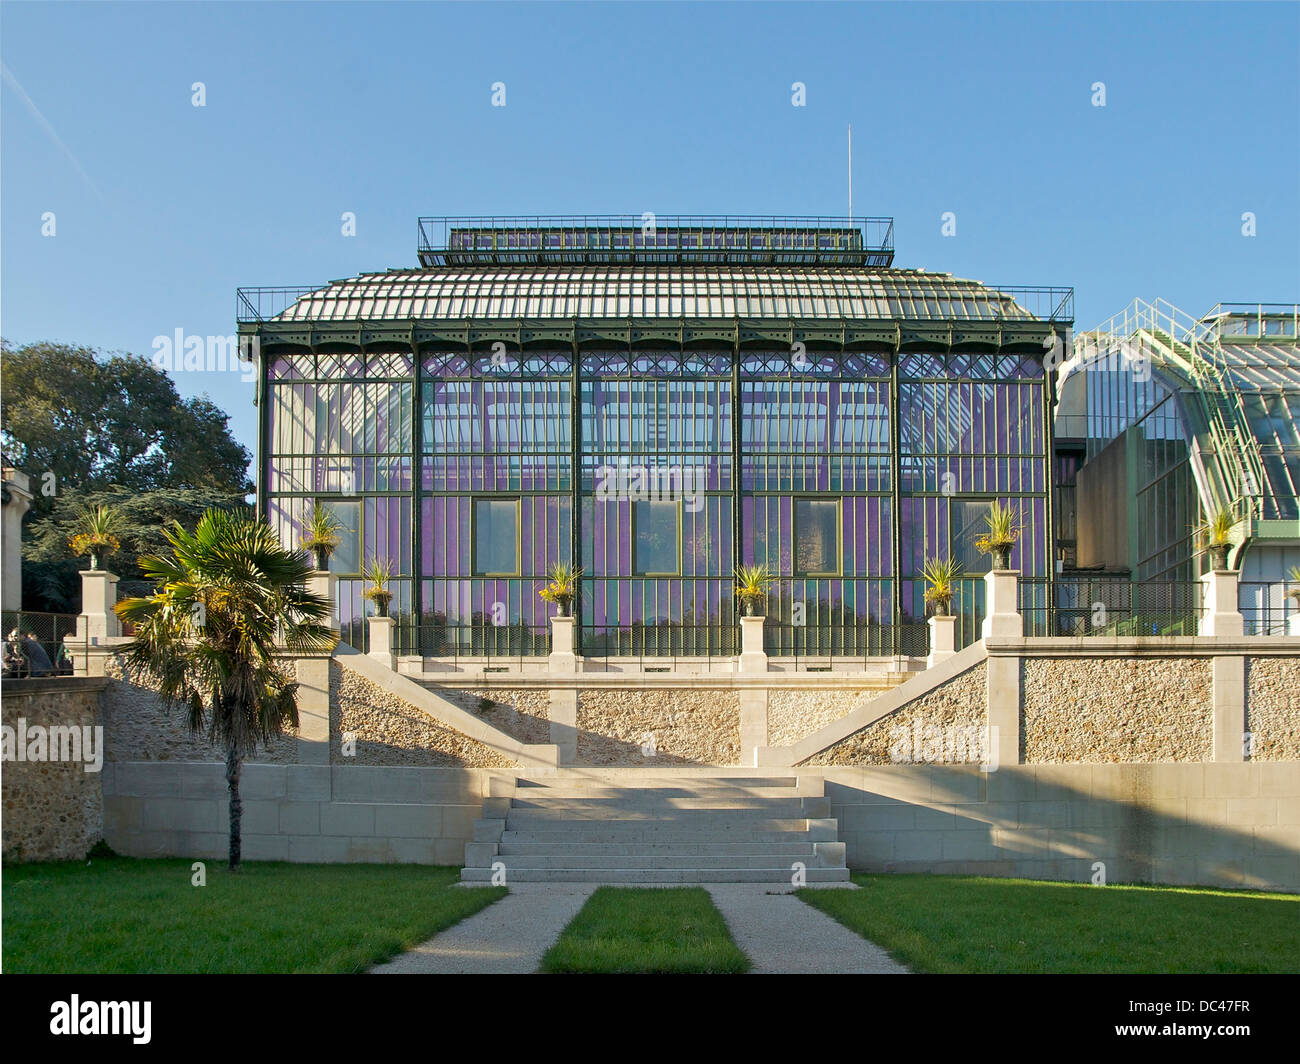 One of the most ancient greenhouses in the world (1834-1836. Restoration 2010. Architect was Charles Rohault de - Stock Image